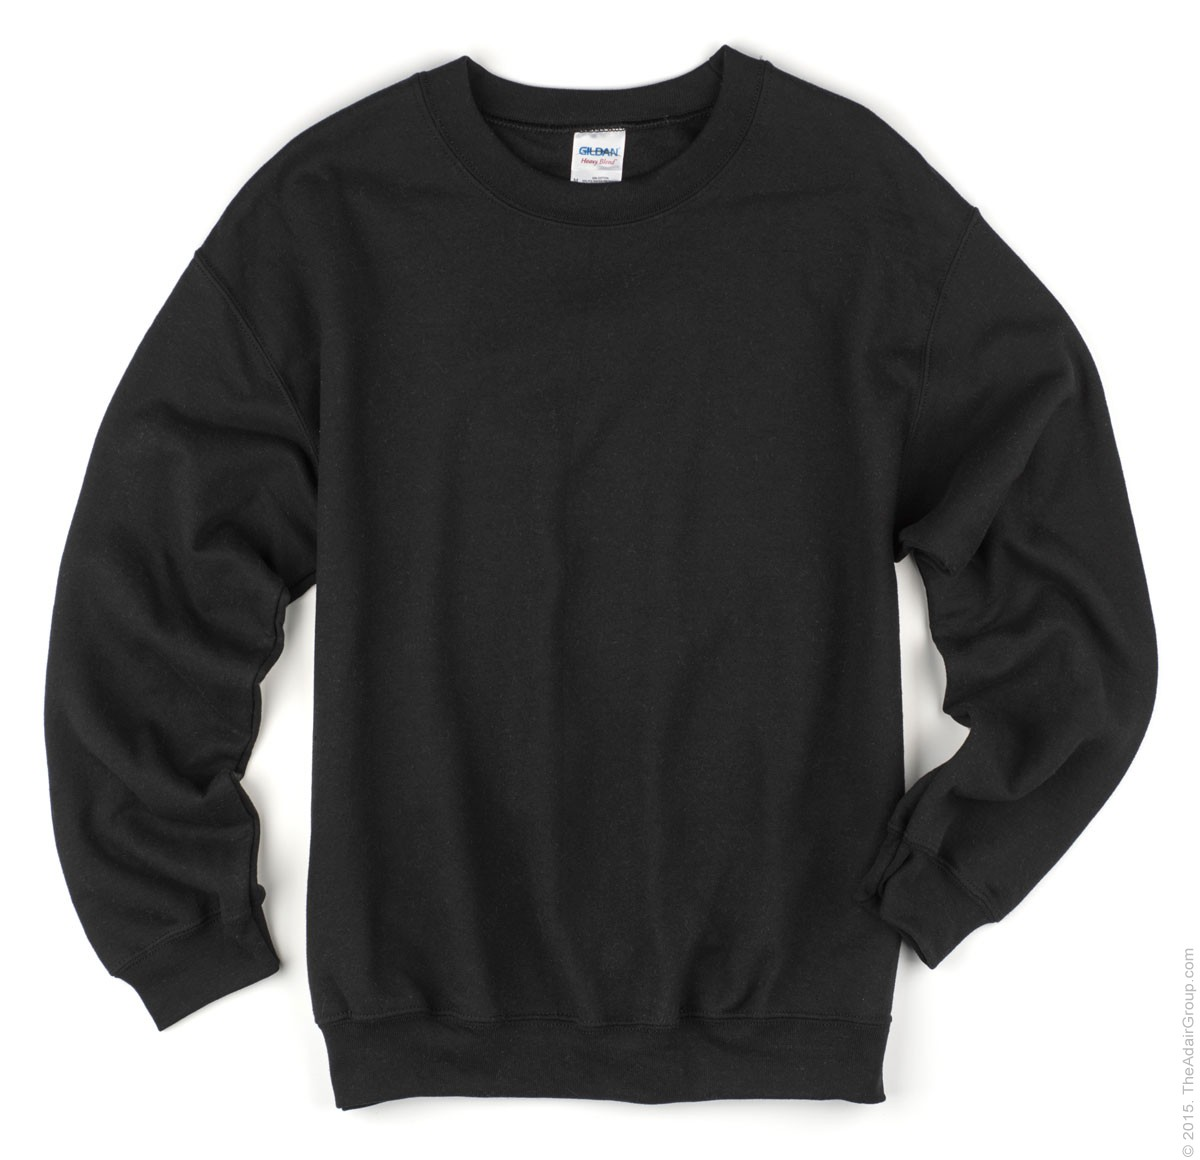 Shop Crewneck Sweatshirts at Wholesale Prices from Adair